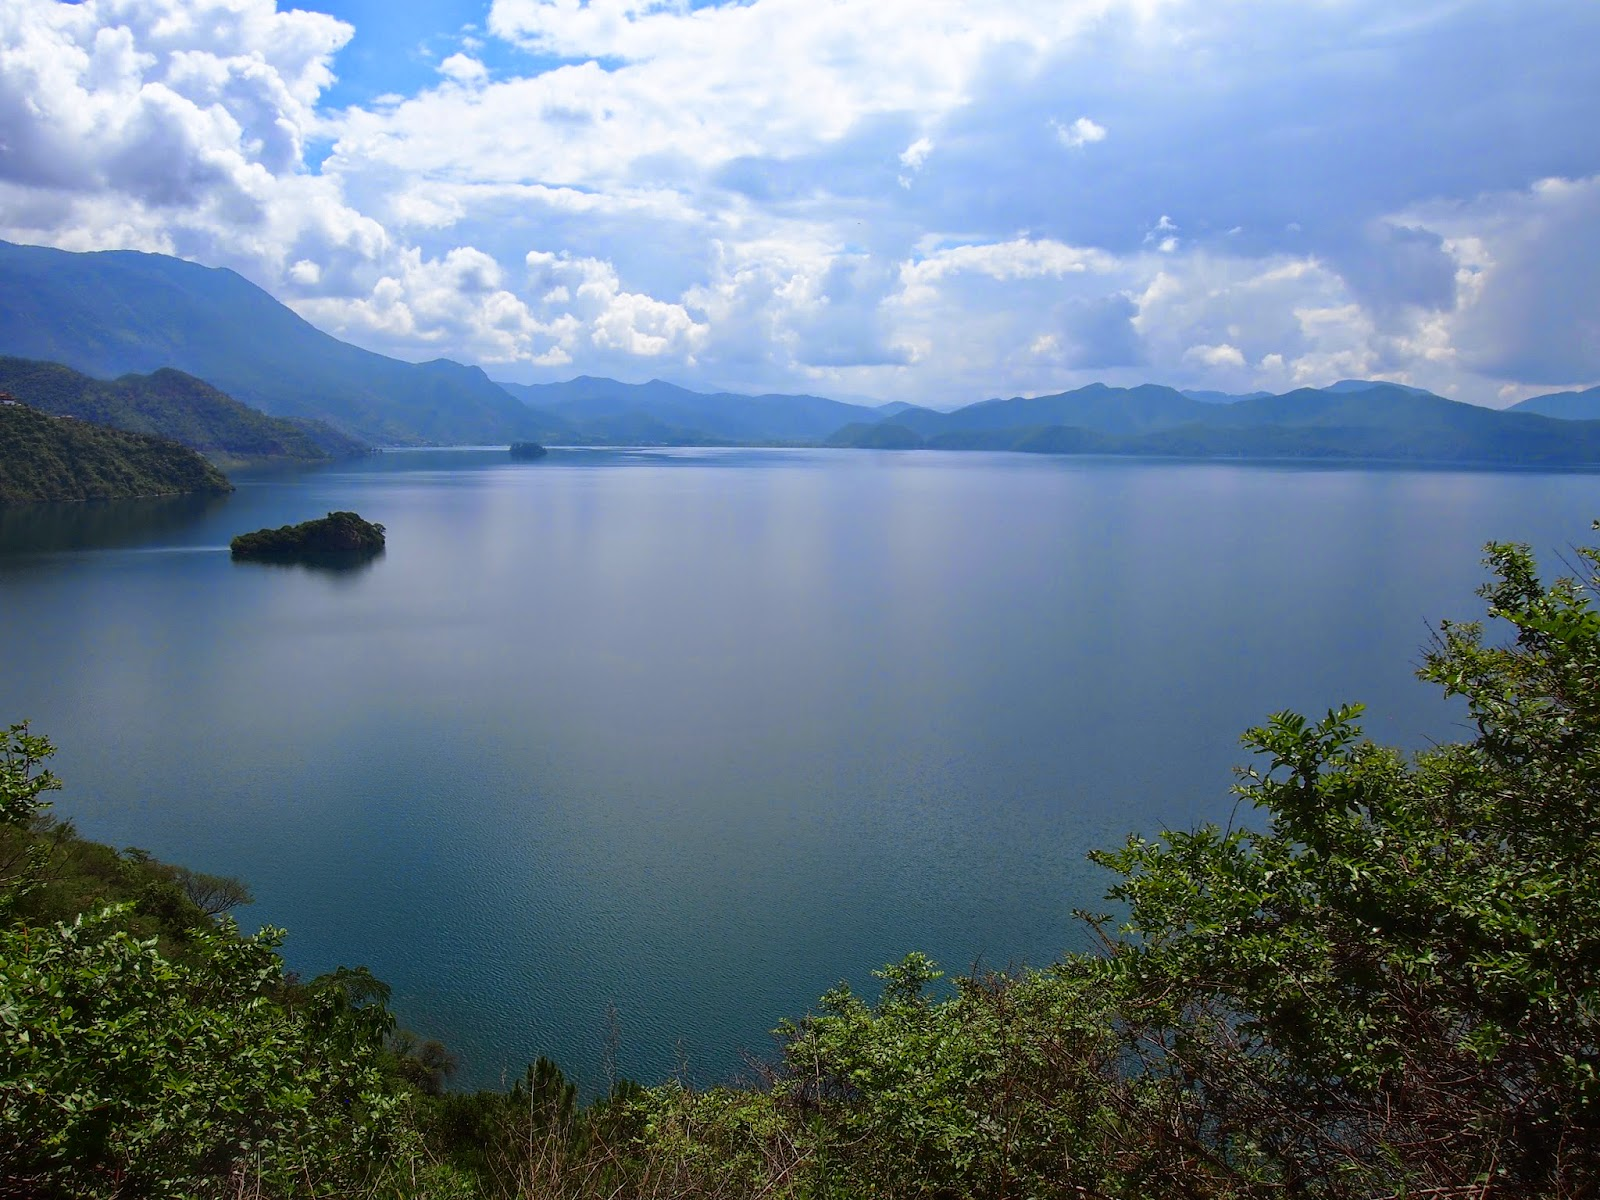 A view of Lugu Lake